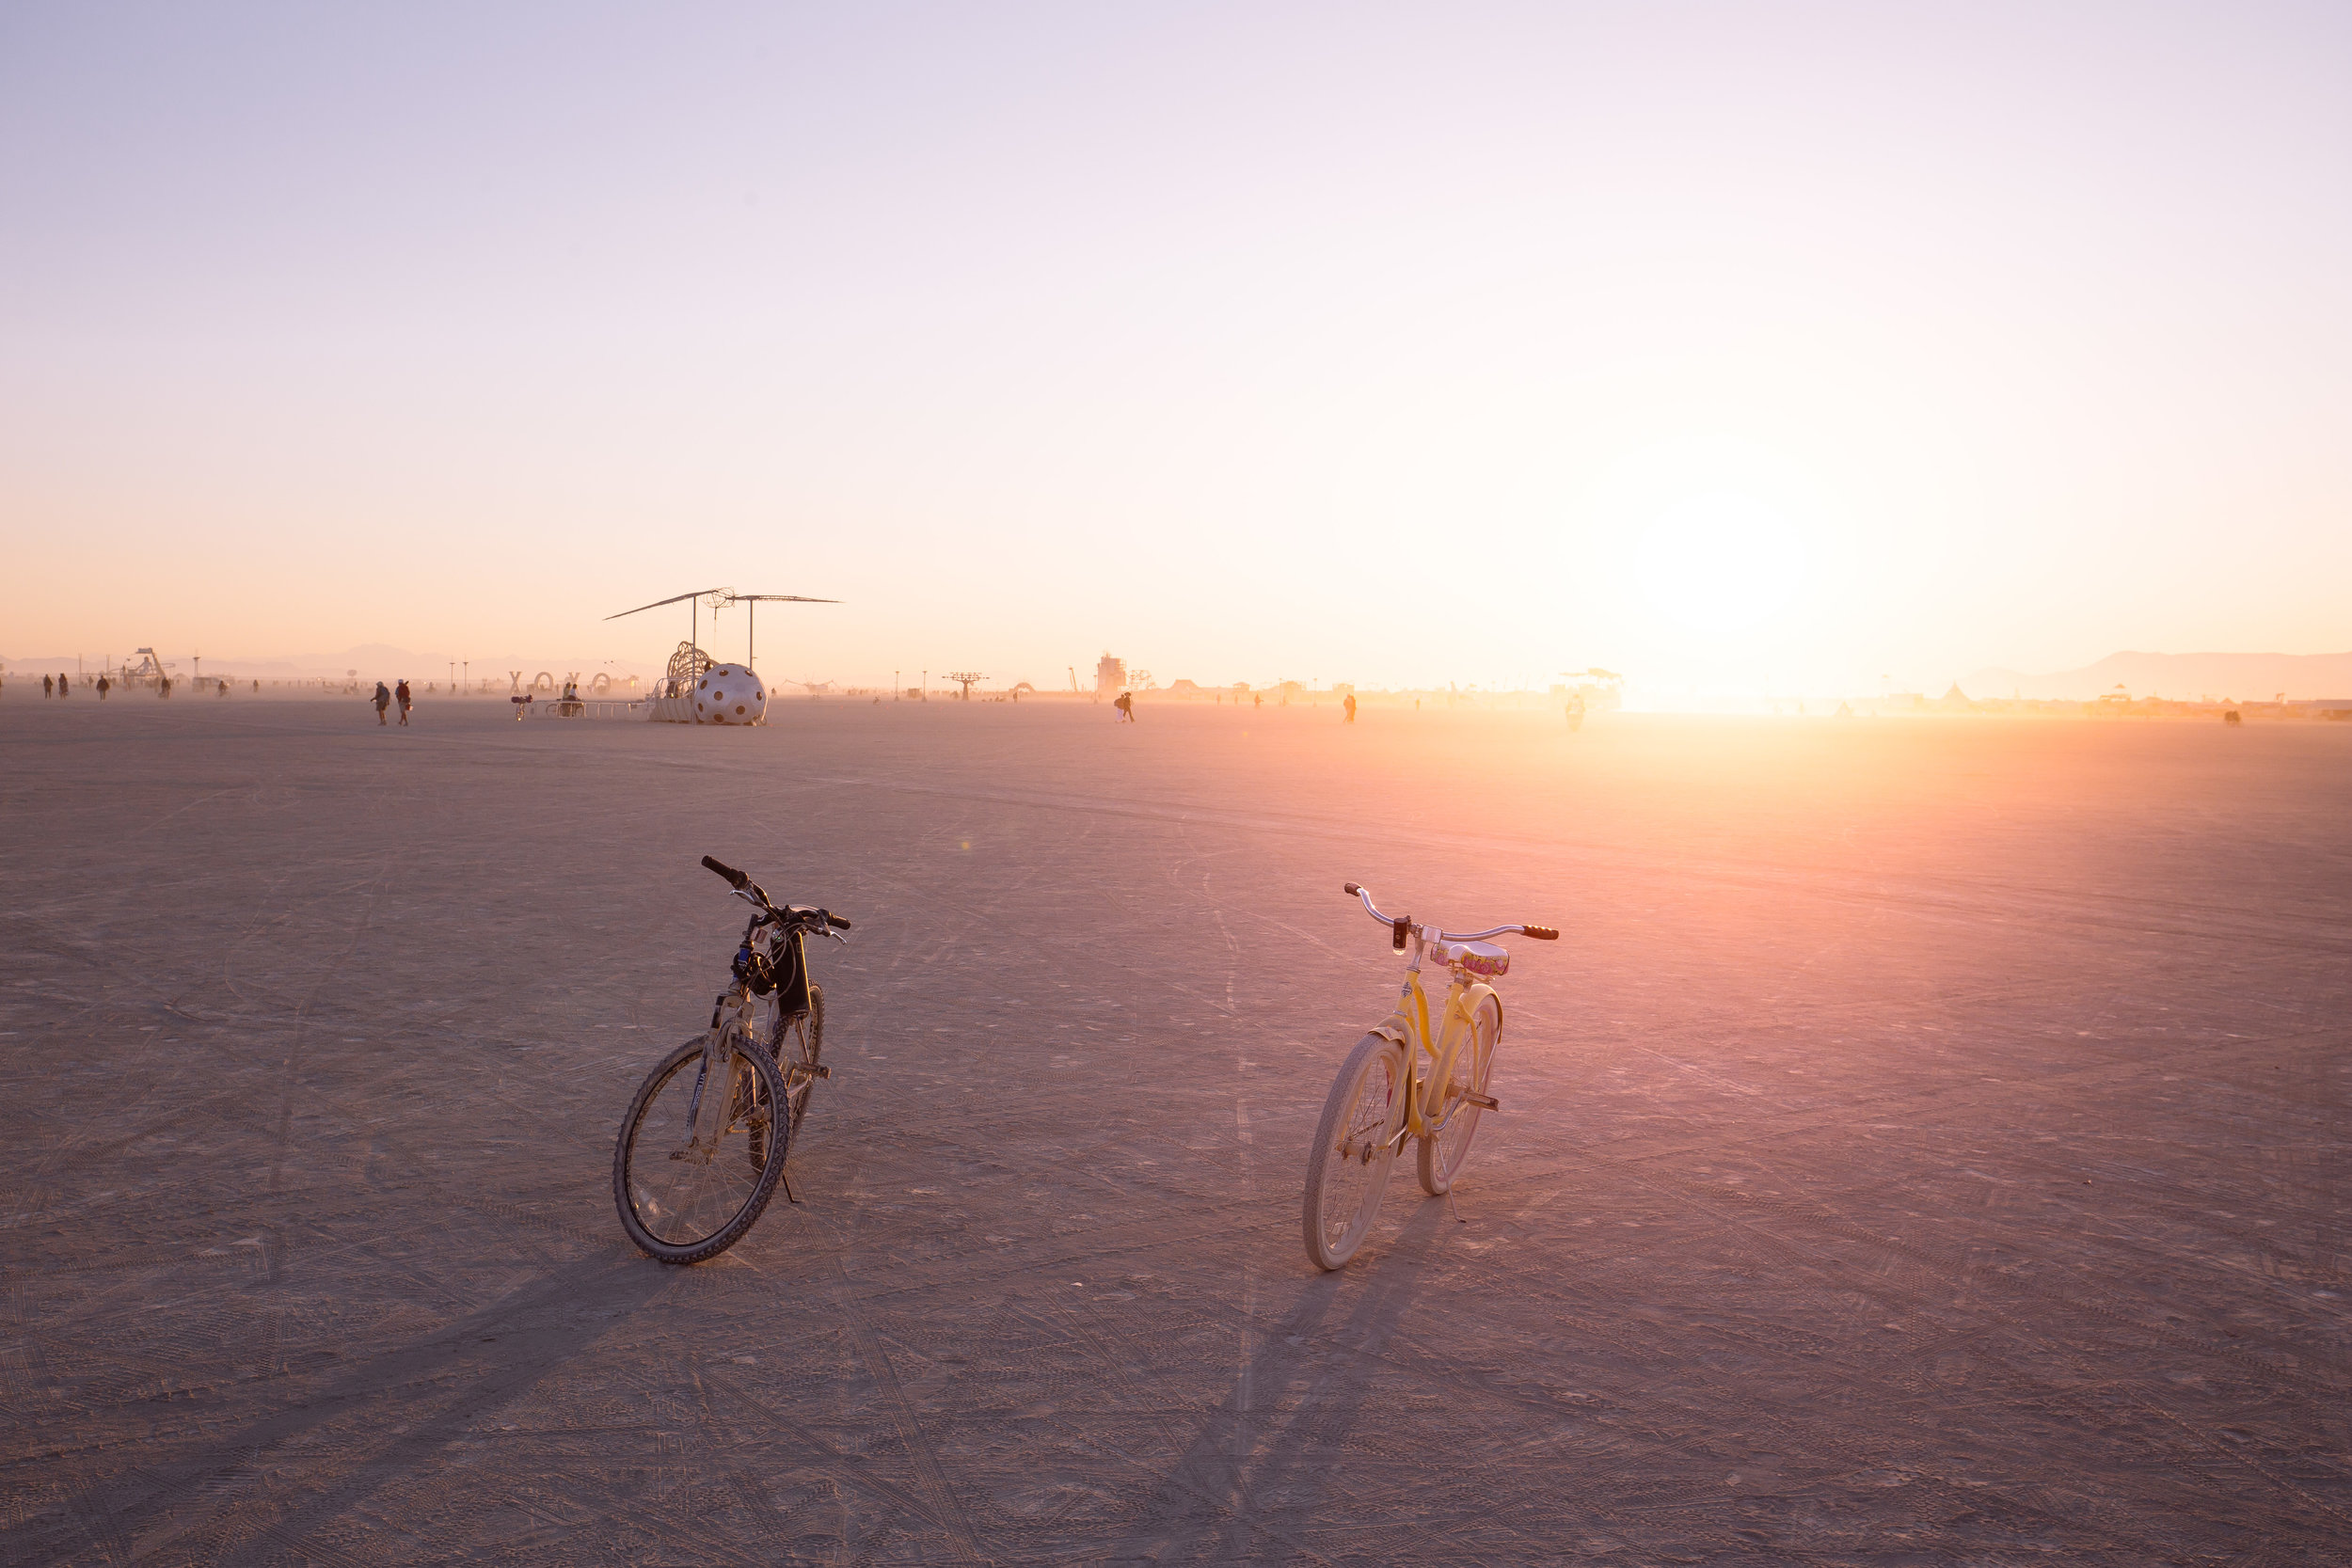 burning man playa desert black rock city san francisco los angeles burner sunrise new dawn techno house djs music community communal bike bicycle new age oneness elevated spirituality existential awareness human experience lsd trip acid mandalas journey in dust we trust